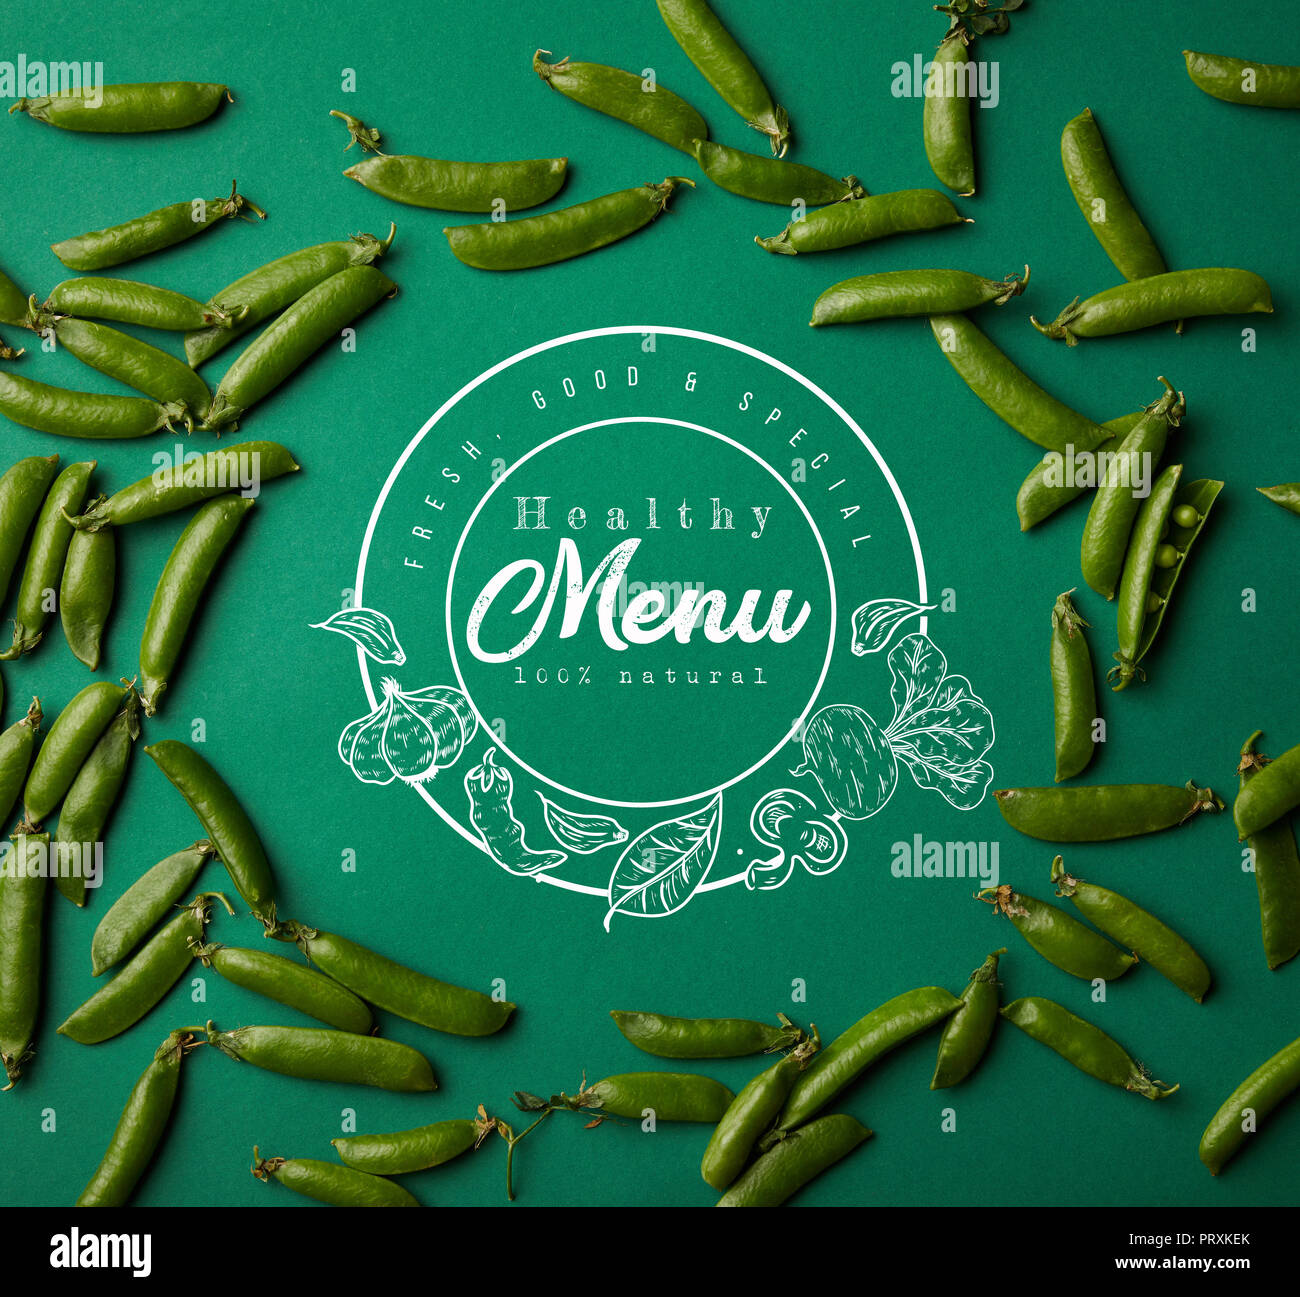 top view of round frame made of pea pods on green surface with 'healthy menu' lettering - Stock Image